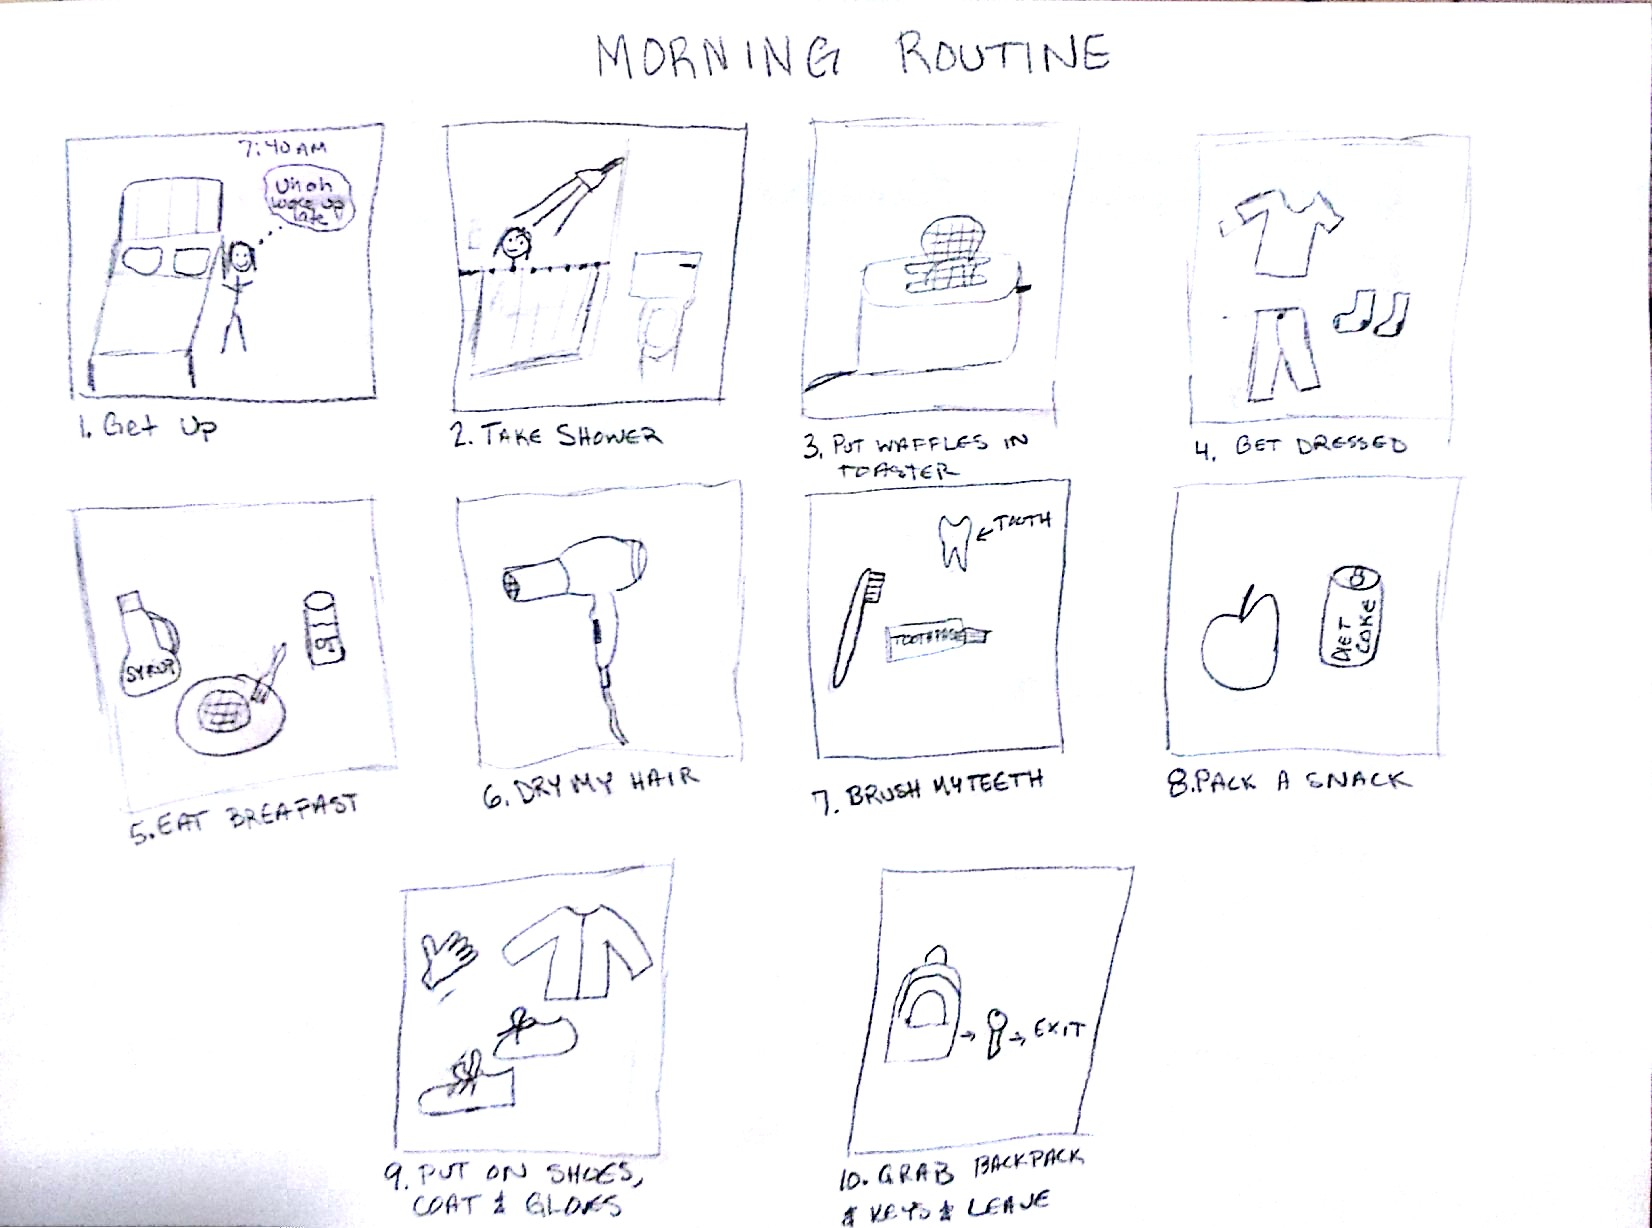 Morning Routine Storyboard